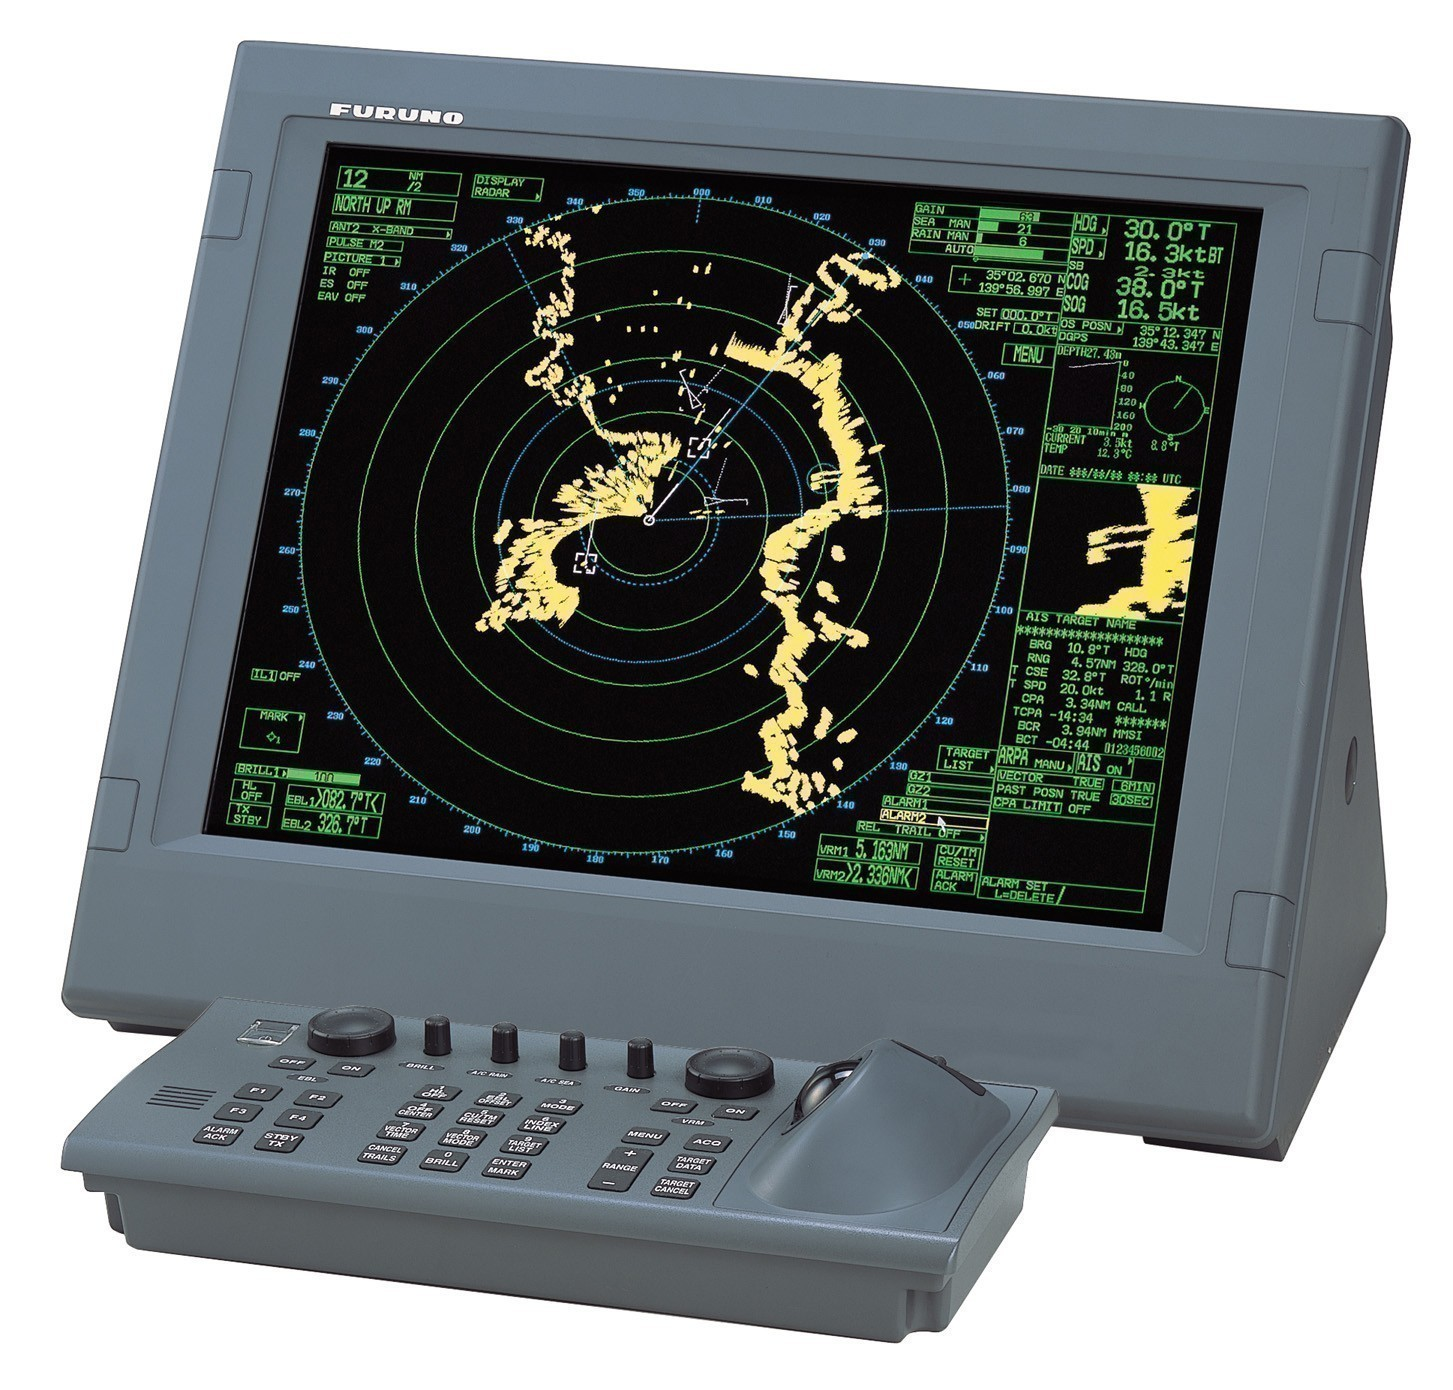 Sea Ray 390 Express Cruiser 76851 furthermore Marine 20traffic also Vantage Pro2 Consolereceiver also Used Boat 55316050141370536670505455494566 likewise Watch. on marine radar screen